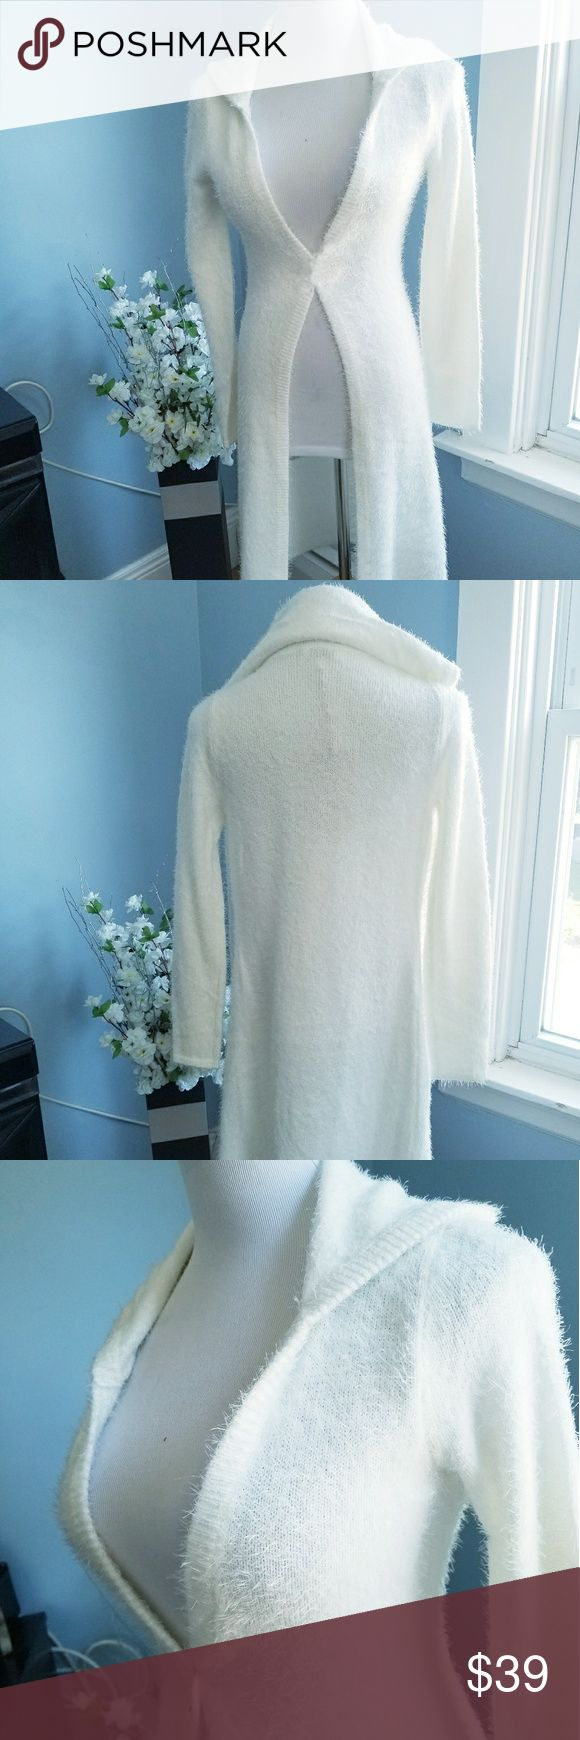 """MARIE Fuzzy White Knit Hooded Open Long Cardigan 60% NYLON 40% ACRYLIC Named after the sassy little kitten from Disney's """"The Aristocats"""" because of how fuzzy and soft this is, this cardigan is perfect for cold and breezy Spring days. Features a super plush fuzzy knit, an open front, a hooded back and a long duster style (length 37"""" on small). Size small to medium *Please note, cardigan is open style. Pinned at waist for photo taking* Bella Edge Sweaters Cardigans"""